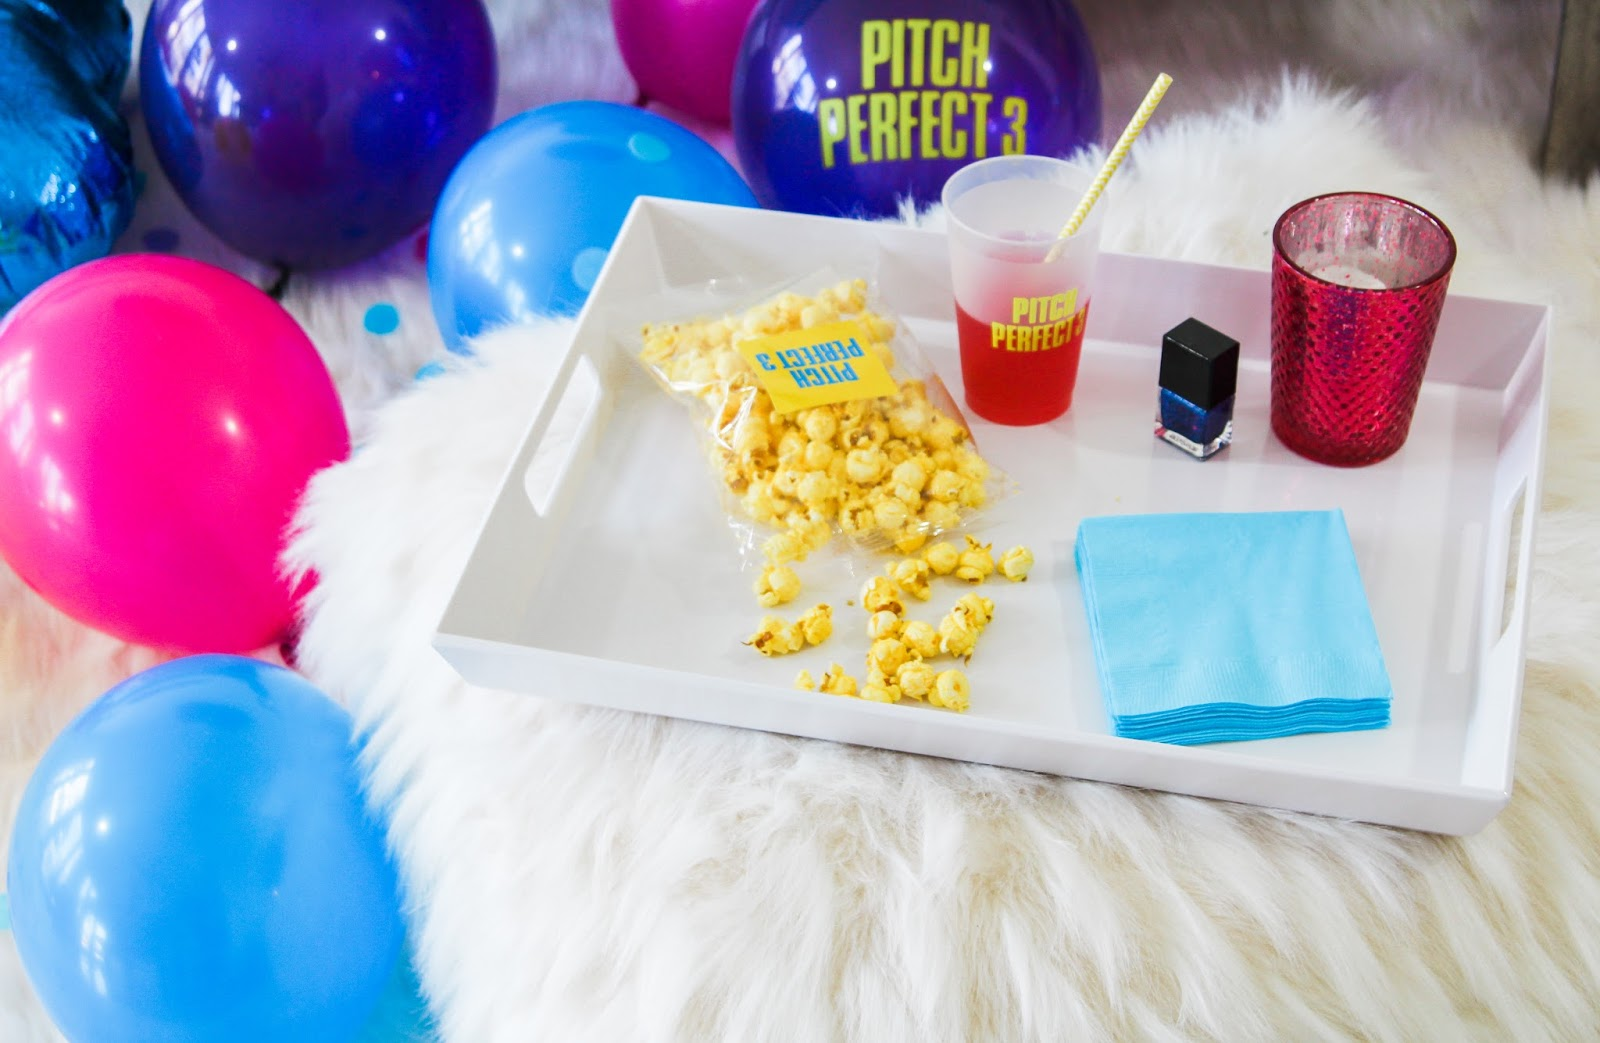 Pitch Perfect 3 Movie Party by popular South Florida party blogger Celebration Stylist